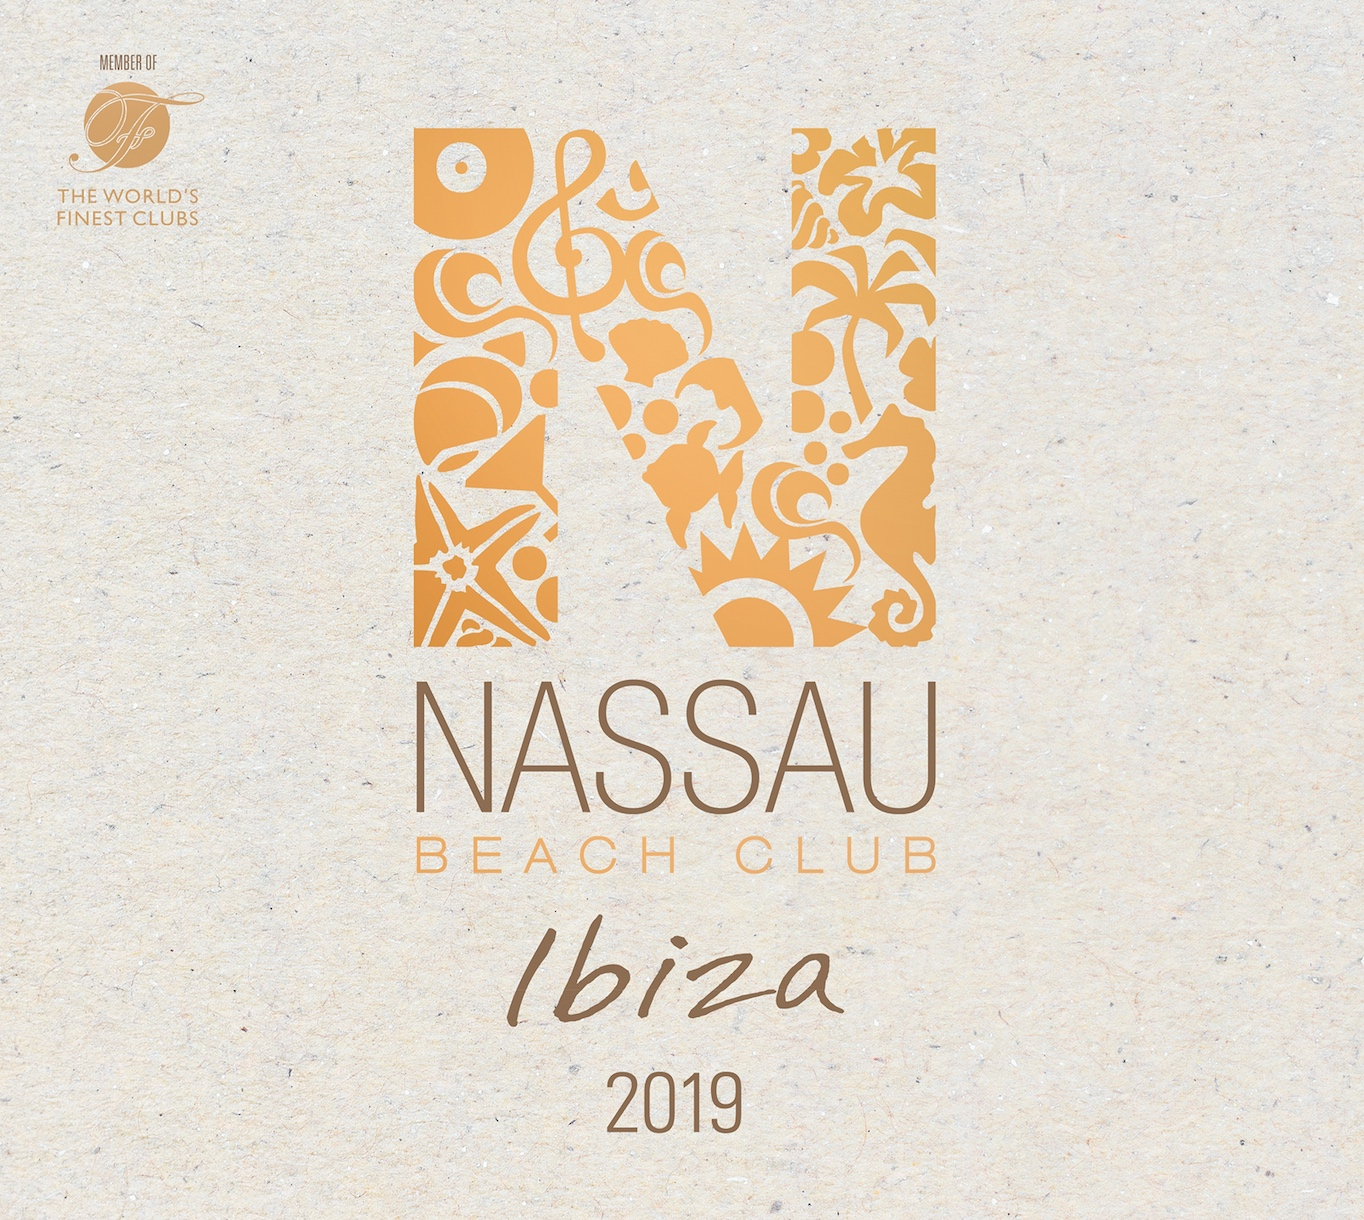 V.A. NASSAU BEACH CLUB IBIZA 2019